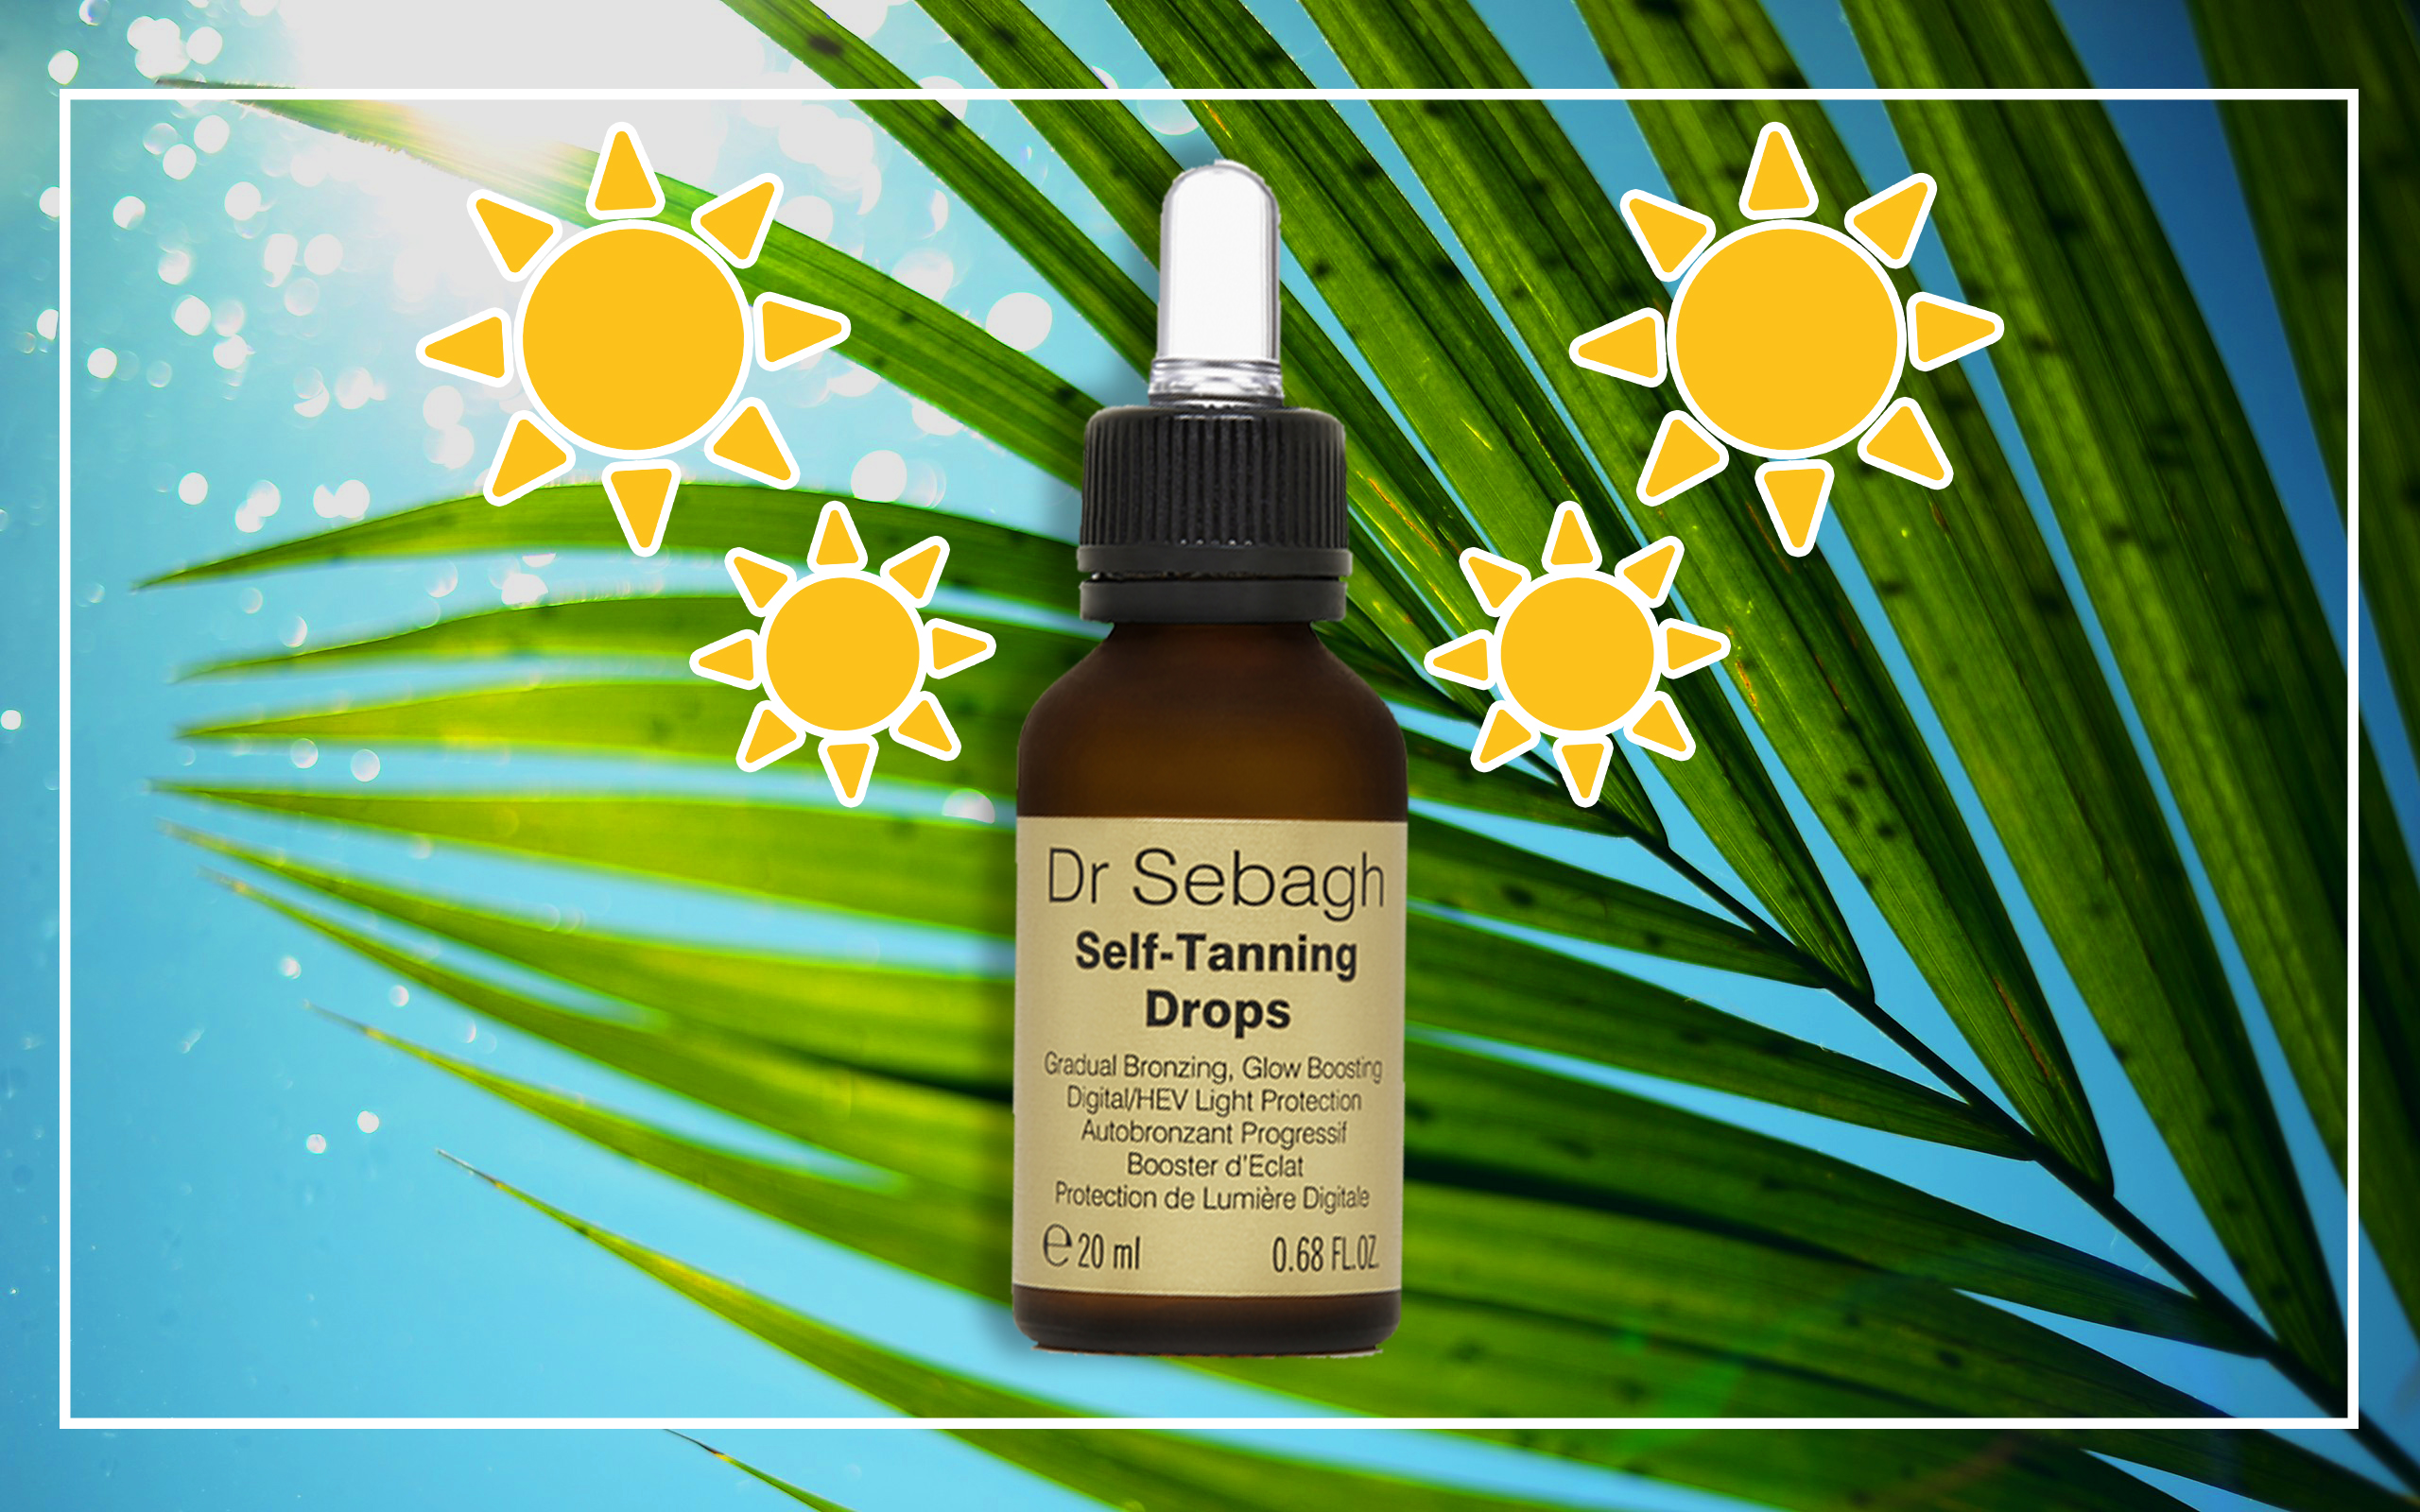 Top Solari estate 2018 - Dr. Sebagh Self-Tanning Drops